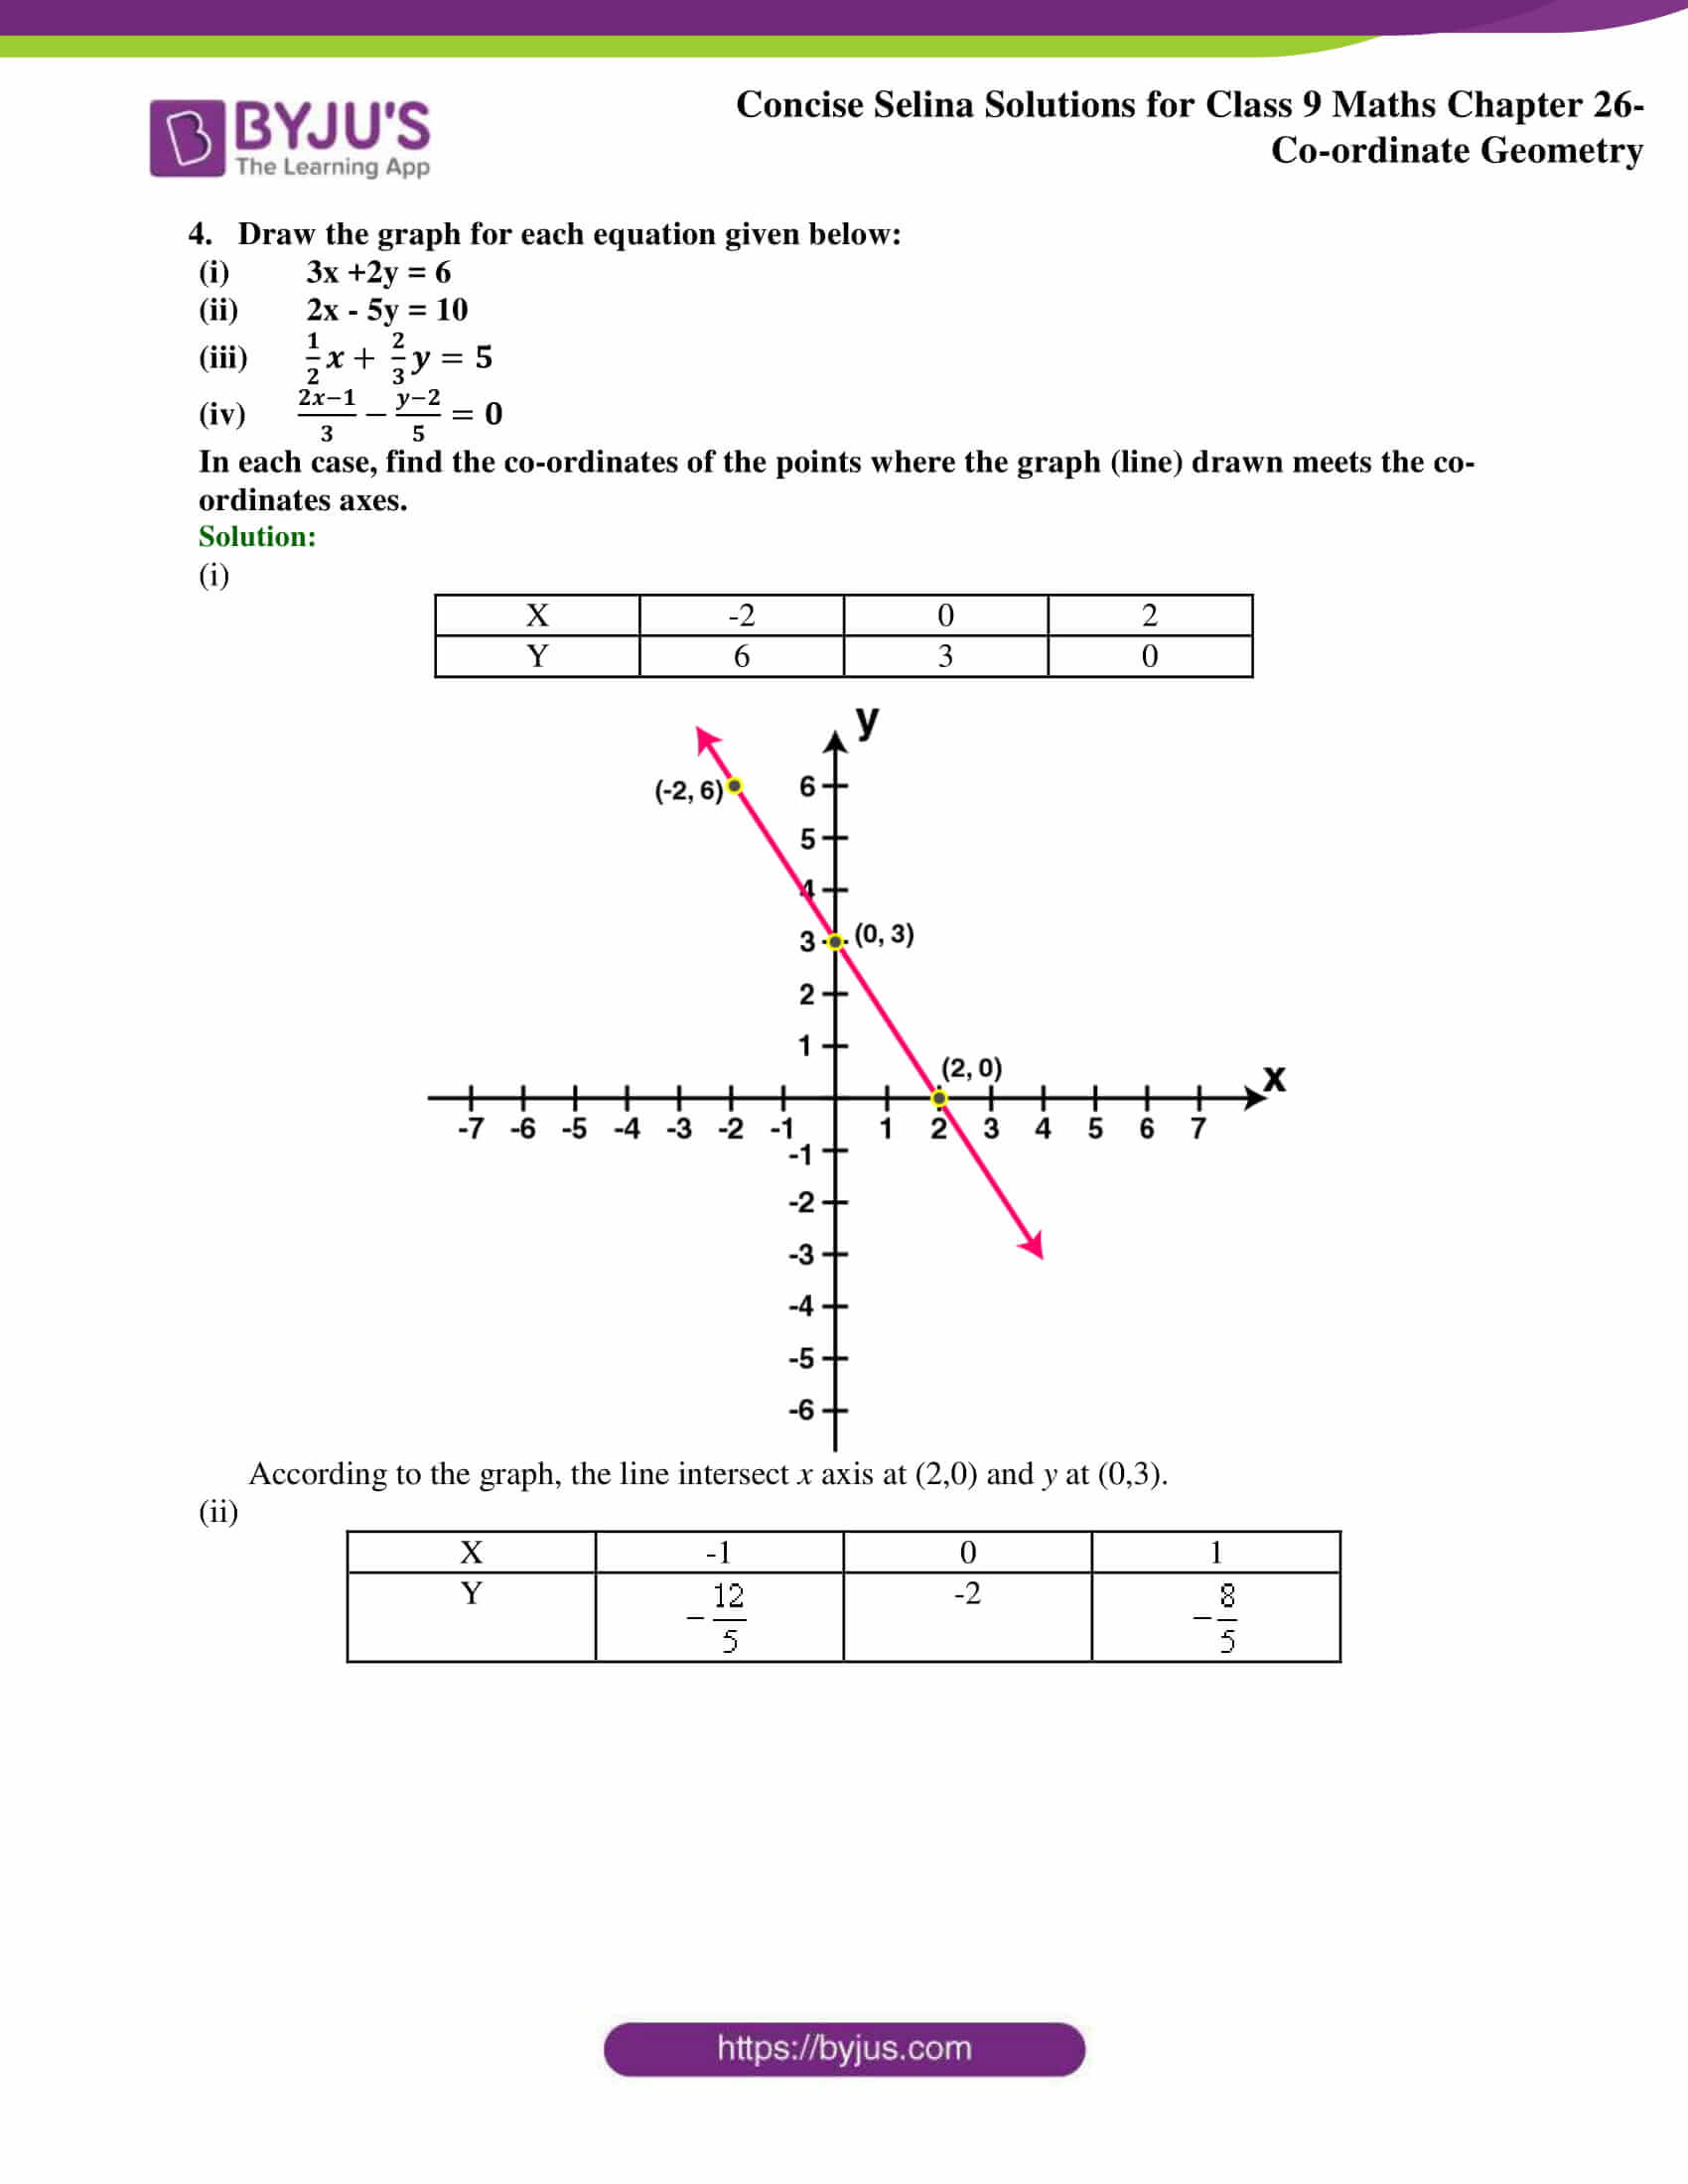 Selina Solutions for Class 9 Maths Chapter 26 part 32